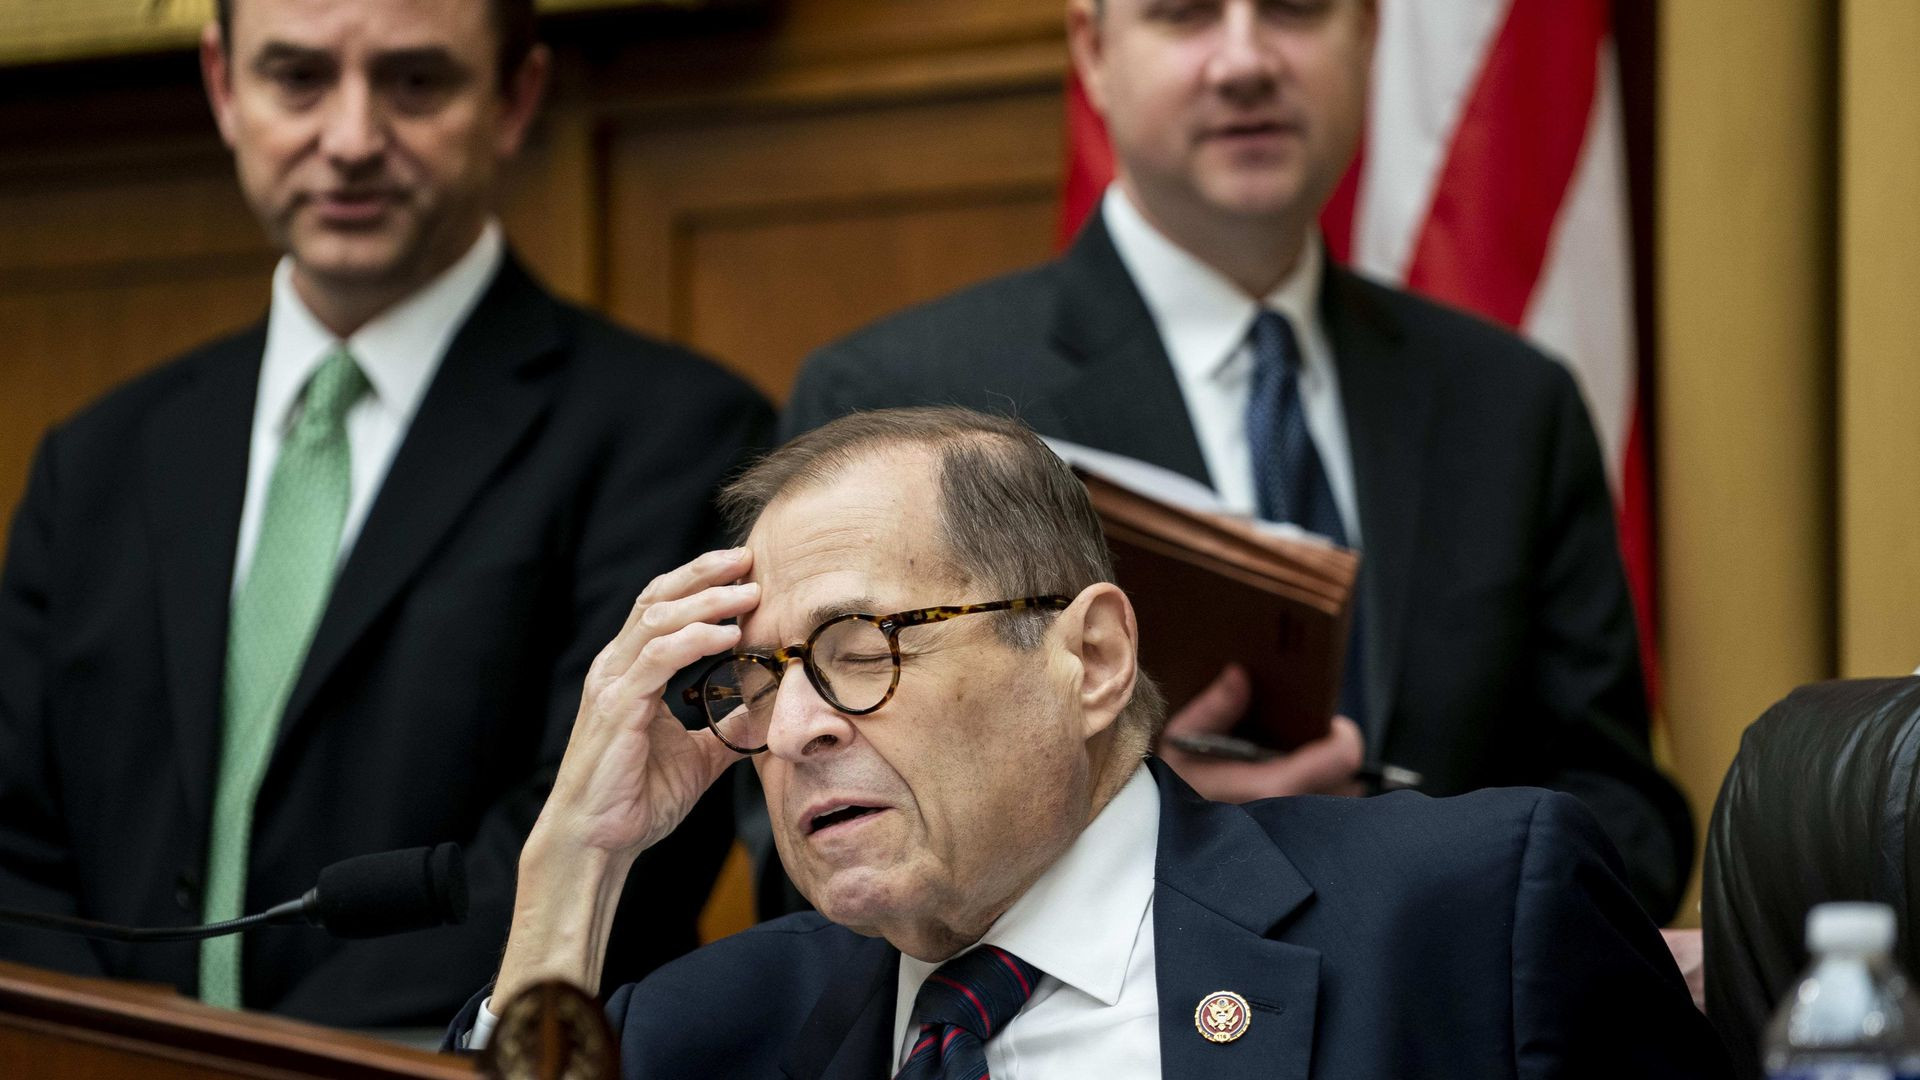 In this image, Nadler shuts his eyes and holds his head while sitting down. Two men stand behind him, on either side of him.